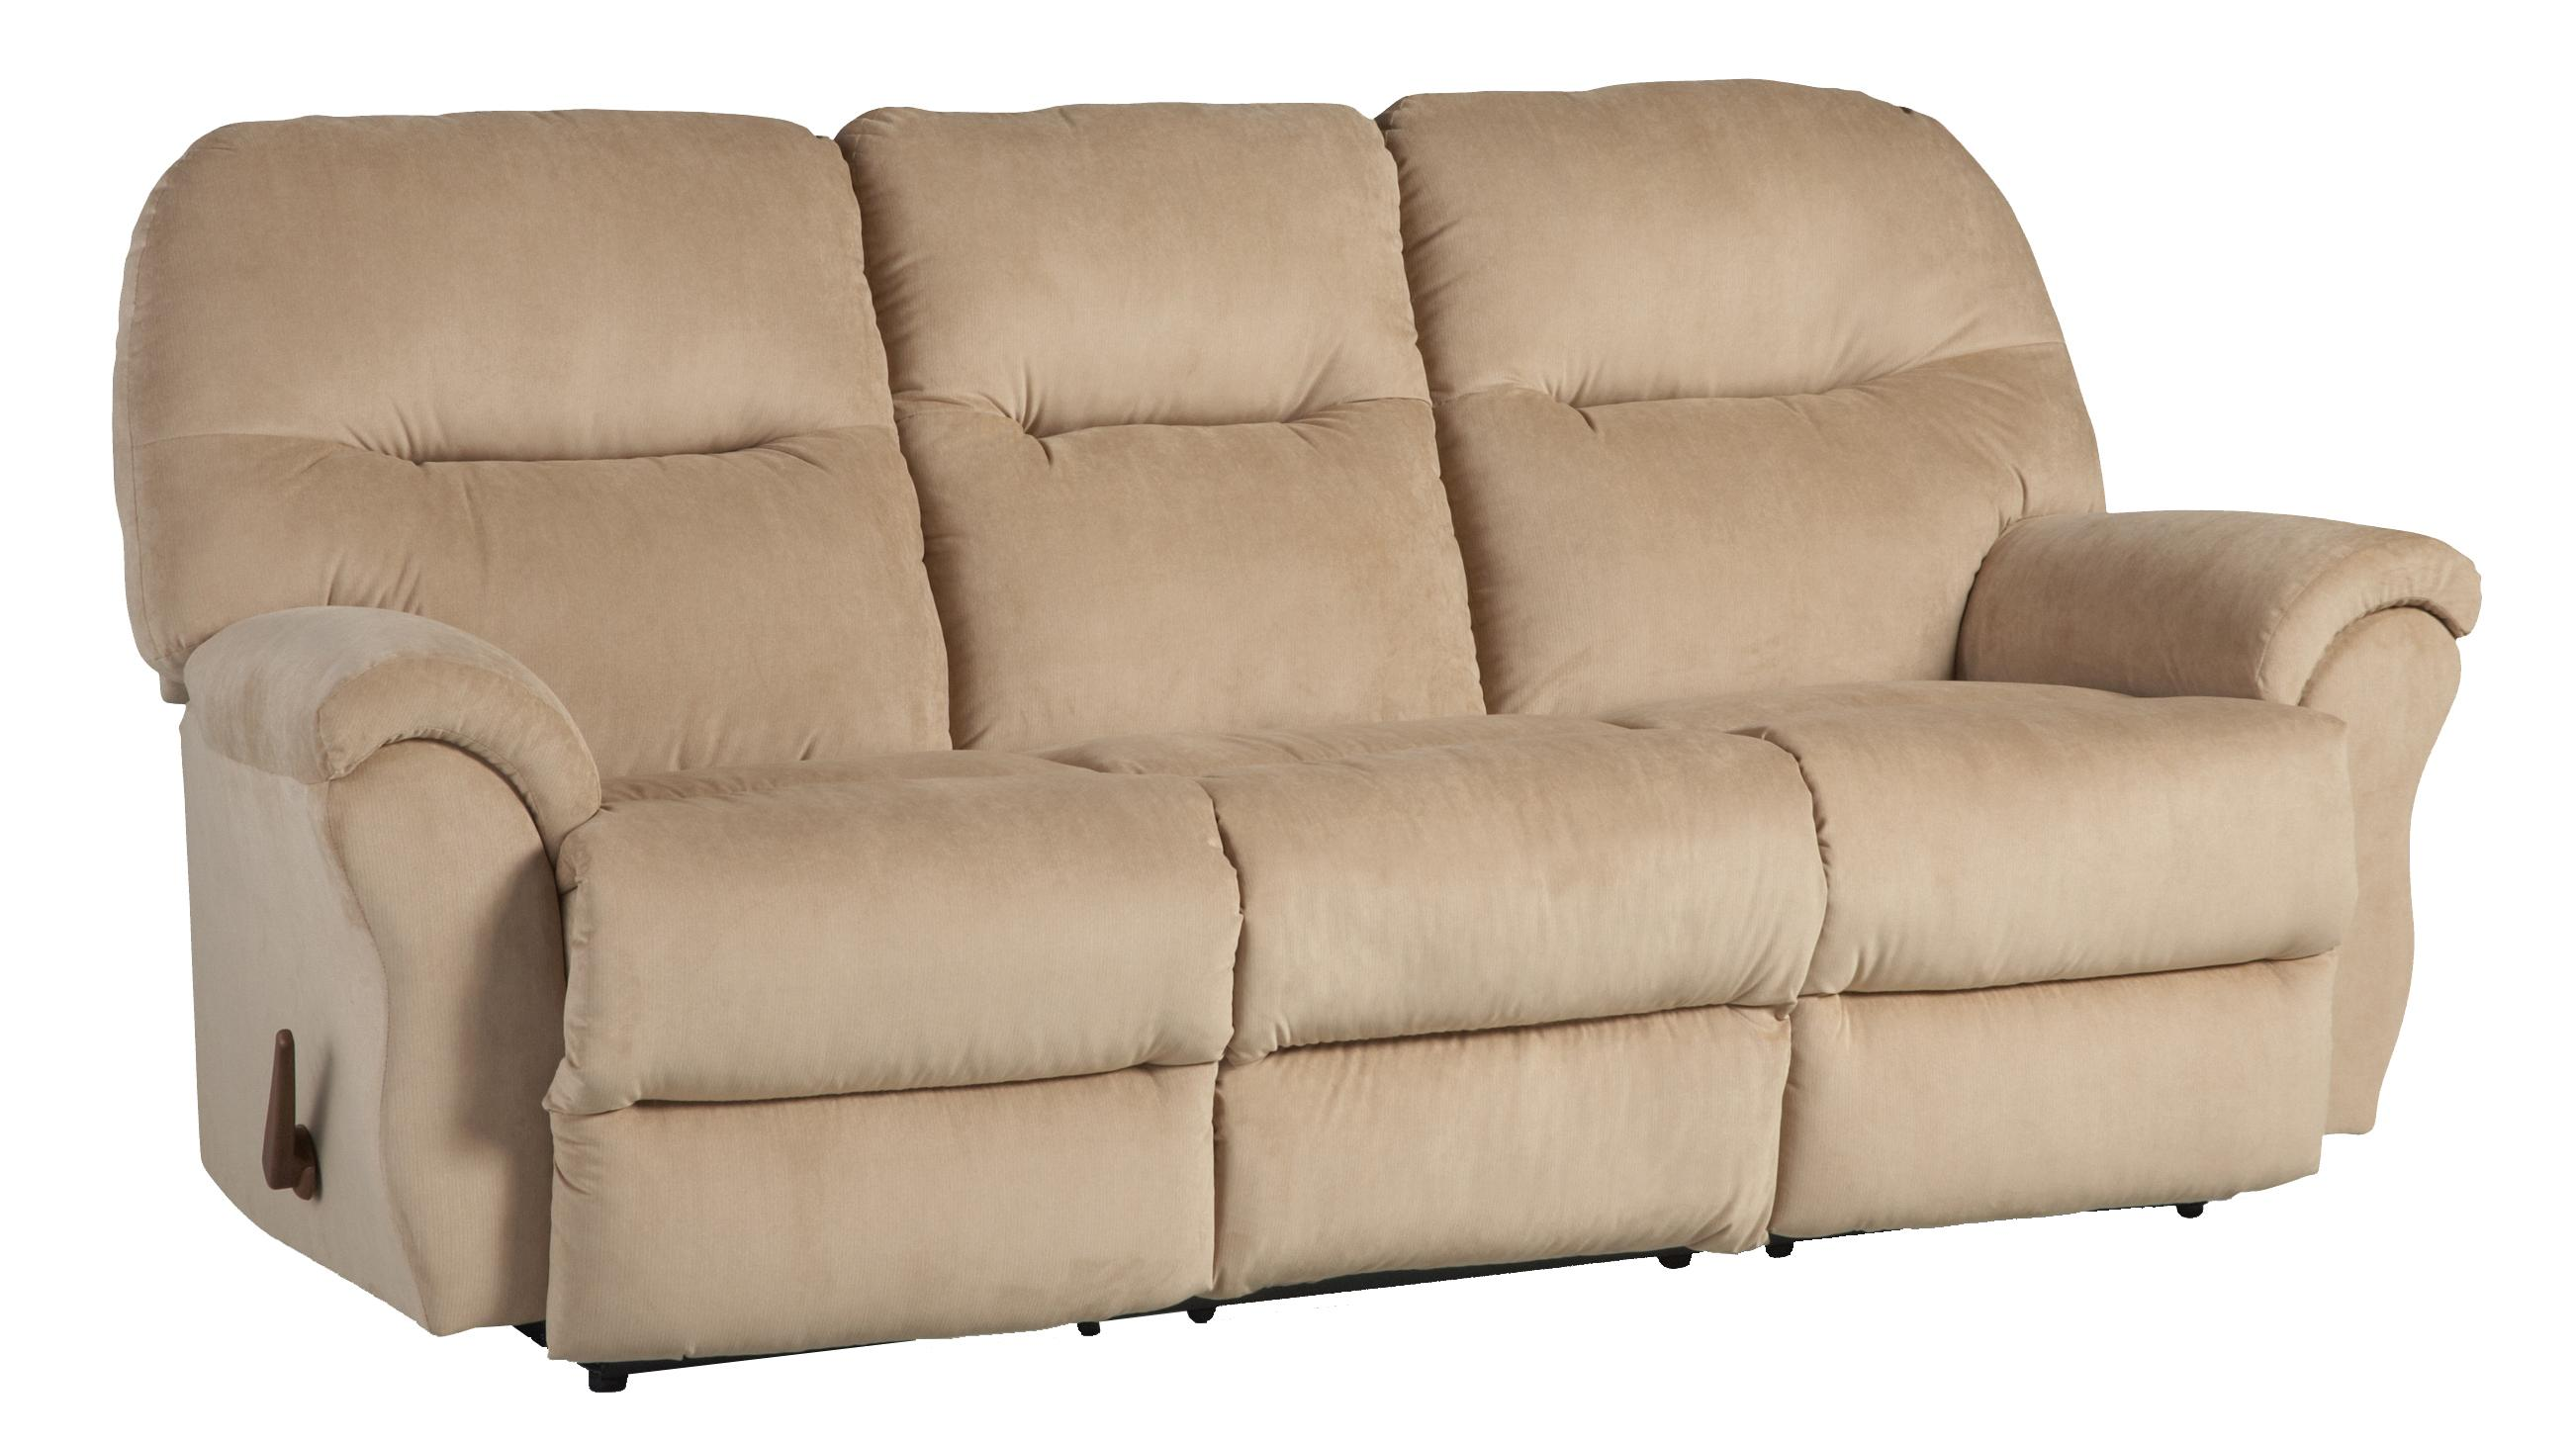 Best Home Furnishings Bodie Sofa - Item Number: S760